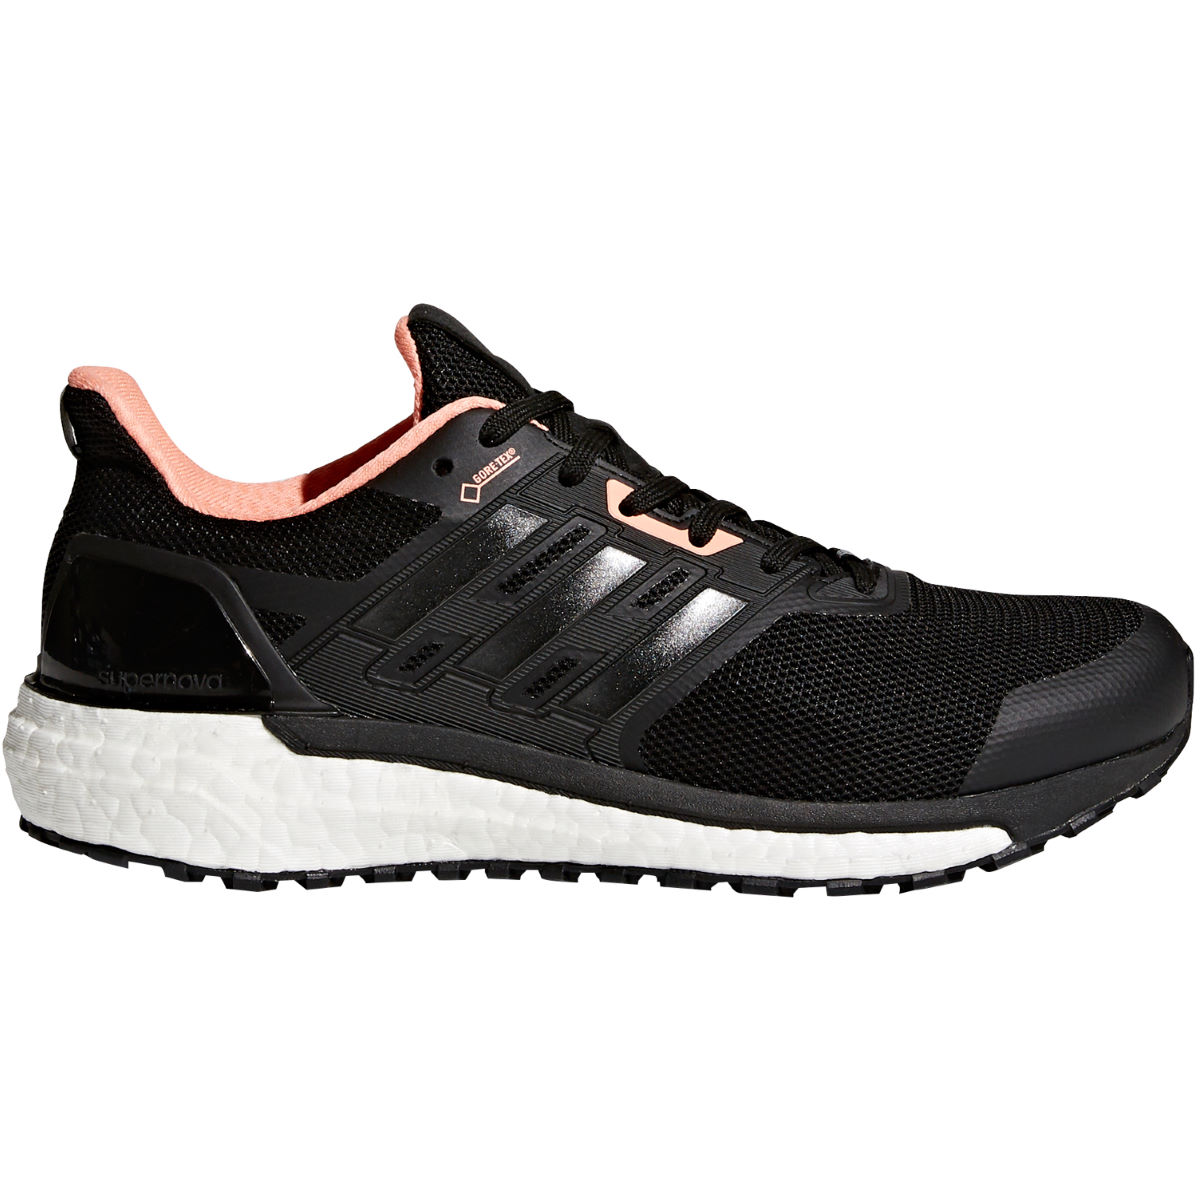 adidas Women's Supernova GTX Shoes - Zapatillas de trail running